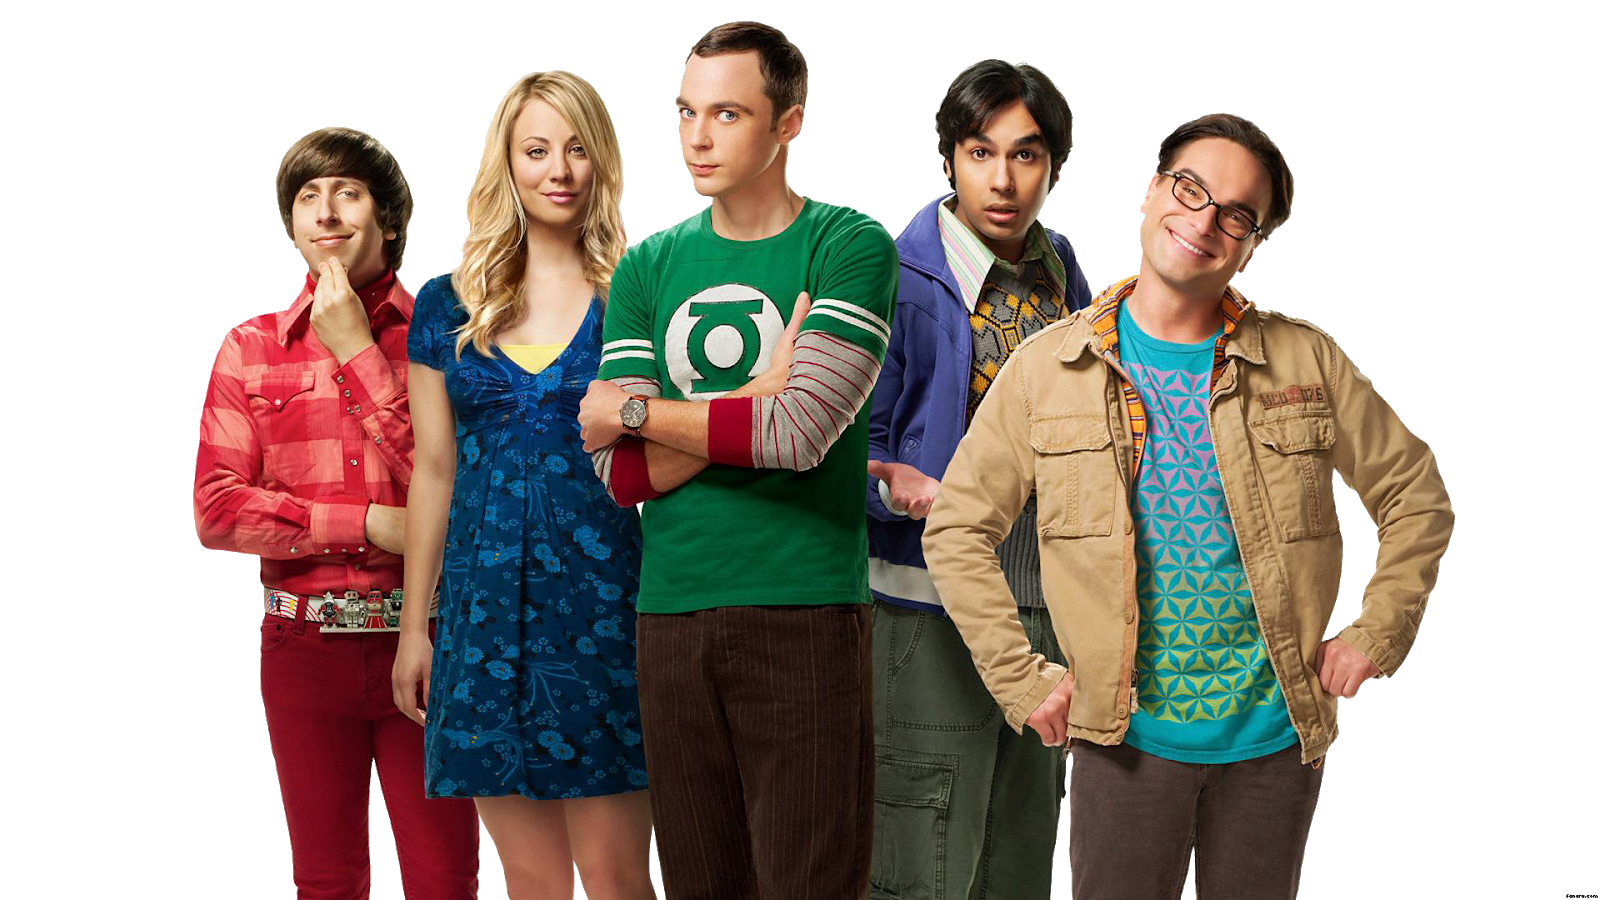 Sheldon cooper leonard hofstadter. Penny penny penny png big bang theory royalty free download